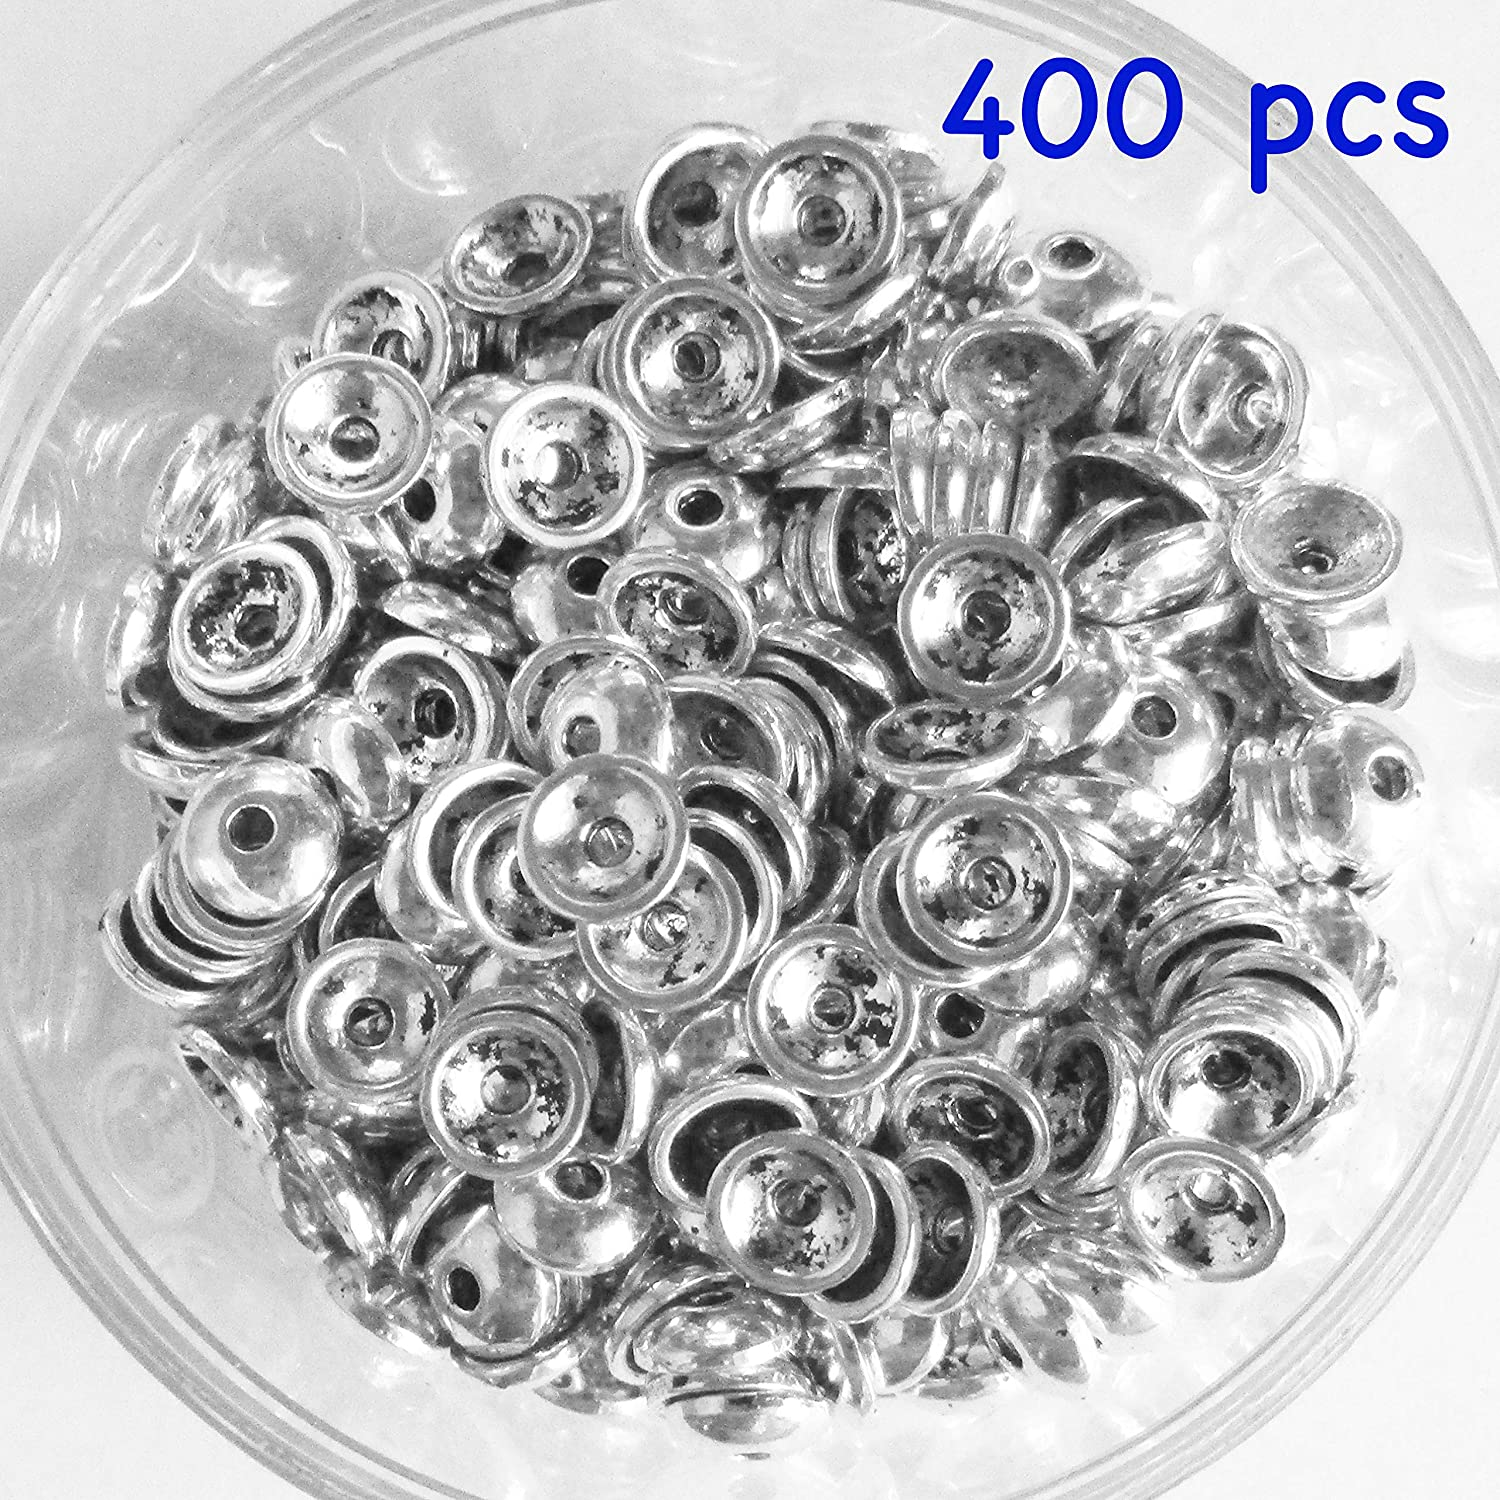 Jewelry Making Heathers cf 100 Pieces Silver Tone Smooth Beads Caps Findings Fit 6-8mm Round Beads